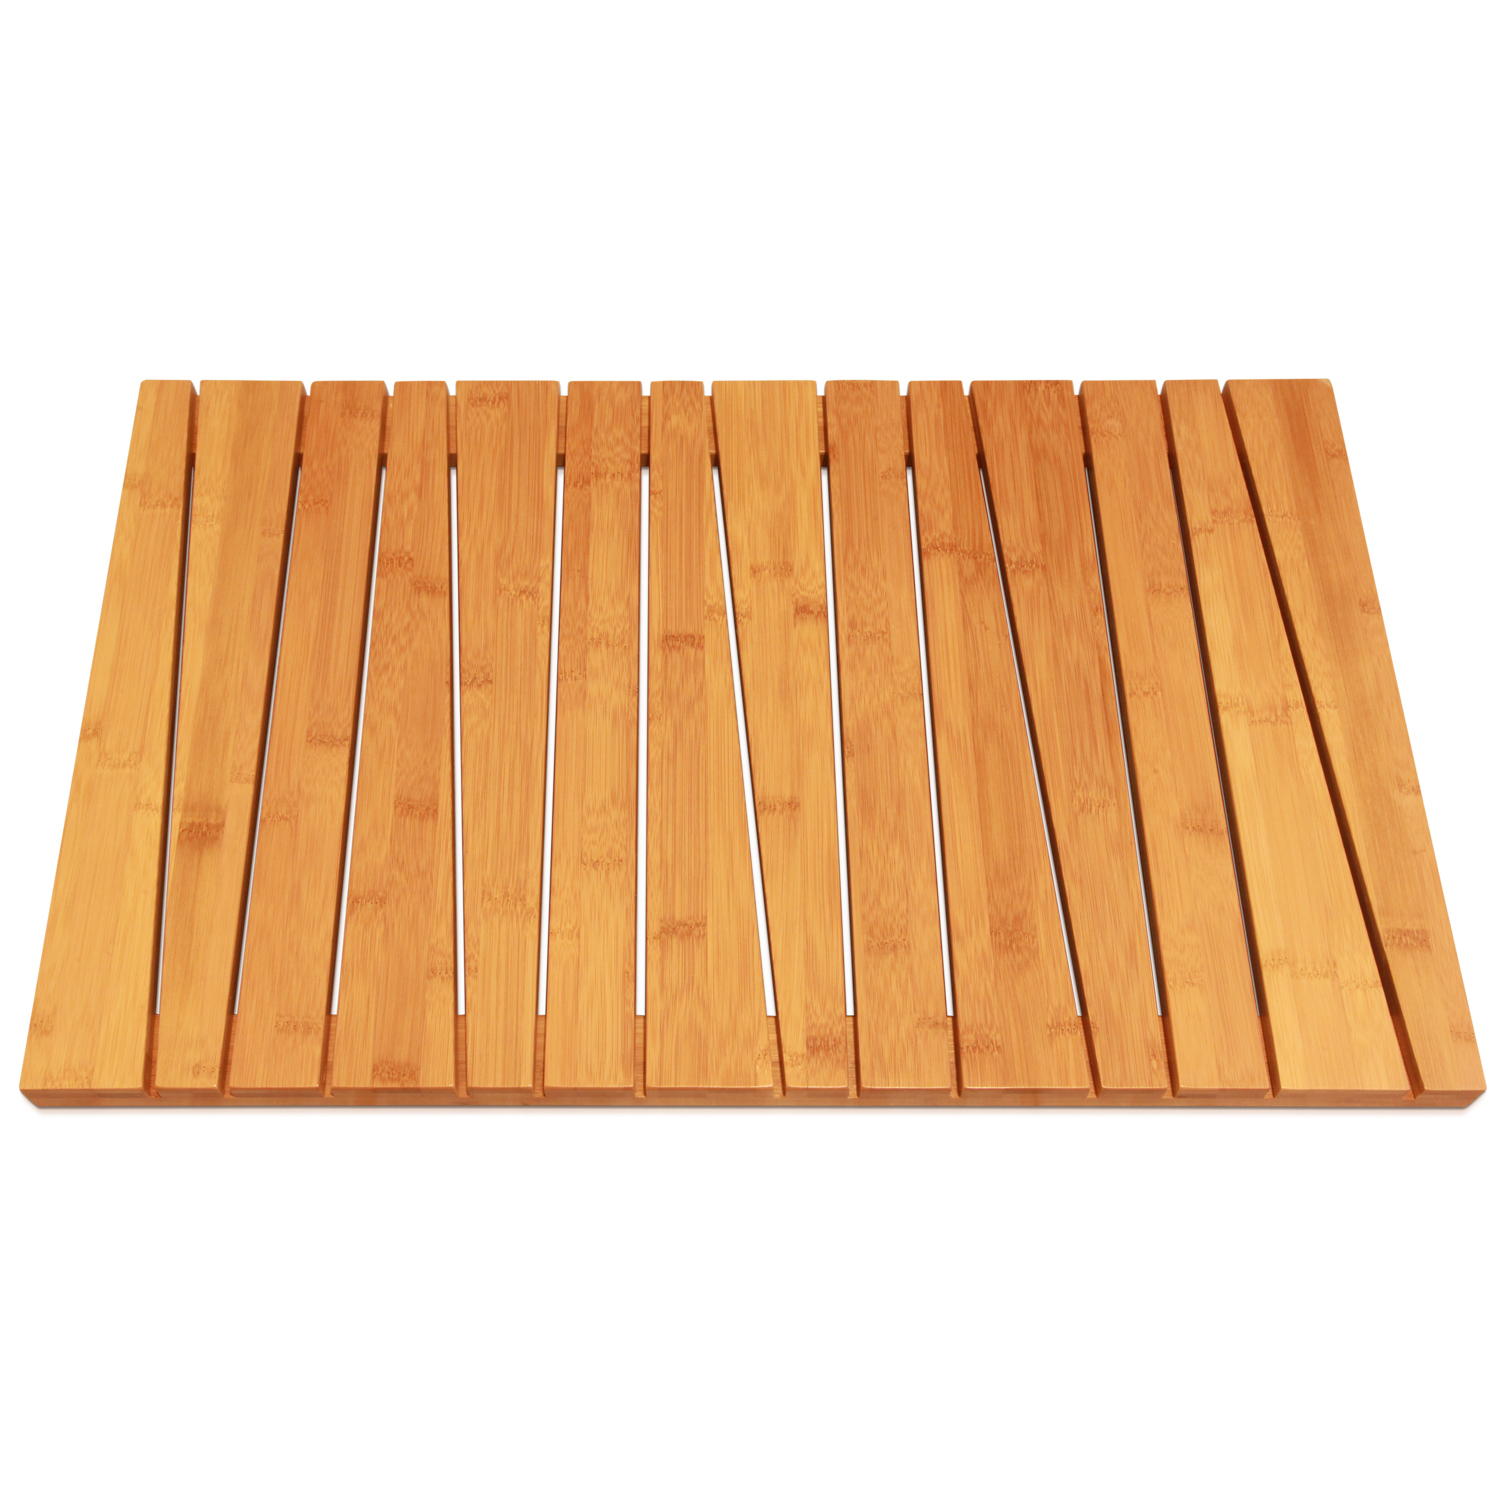 100% Natural Bamboo Deluxe Shower Floor and Bath Mat, Skid Resistant, Heavy-Duty